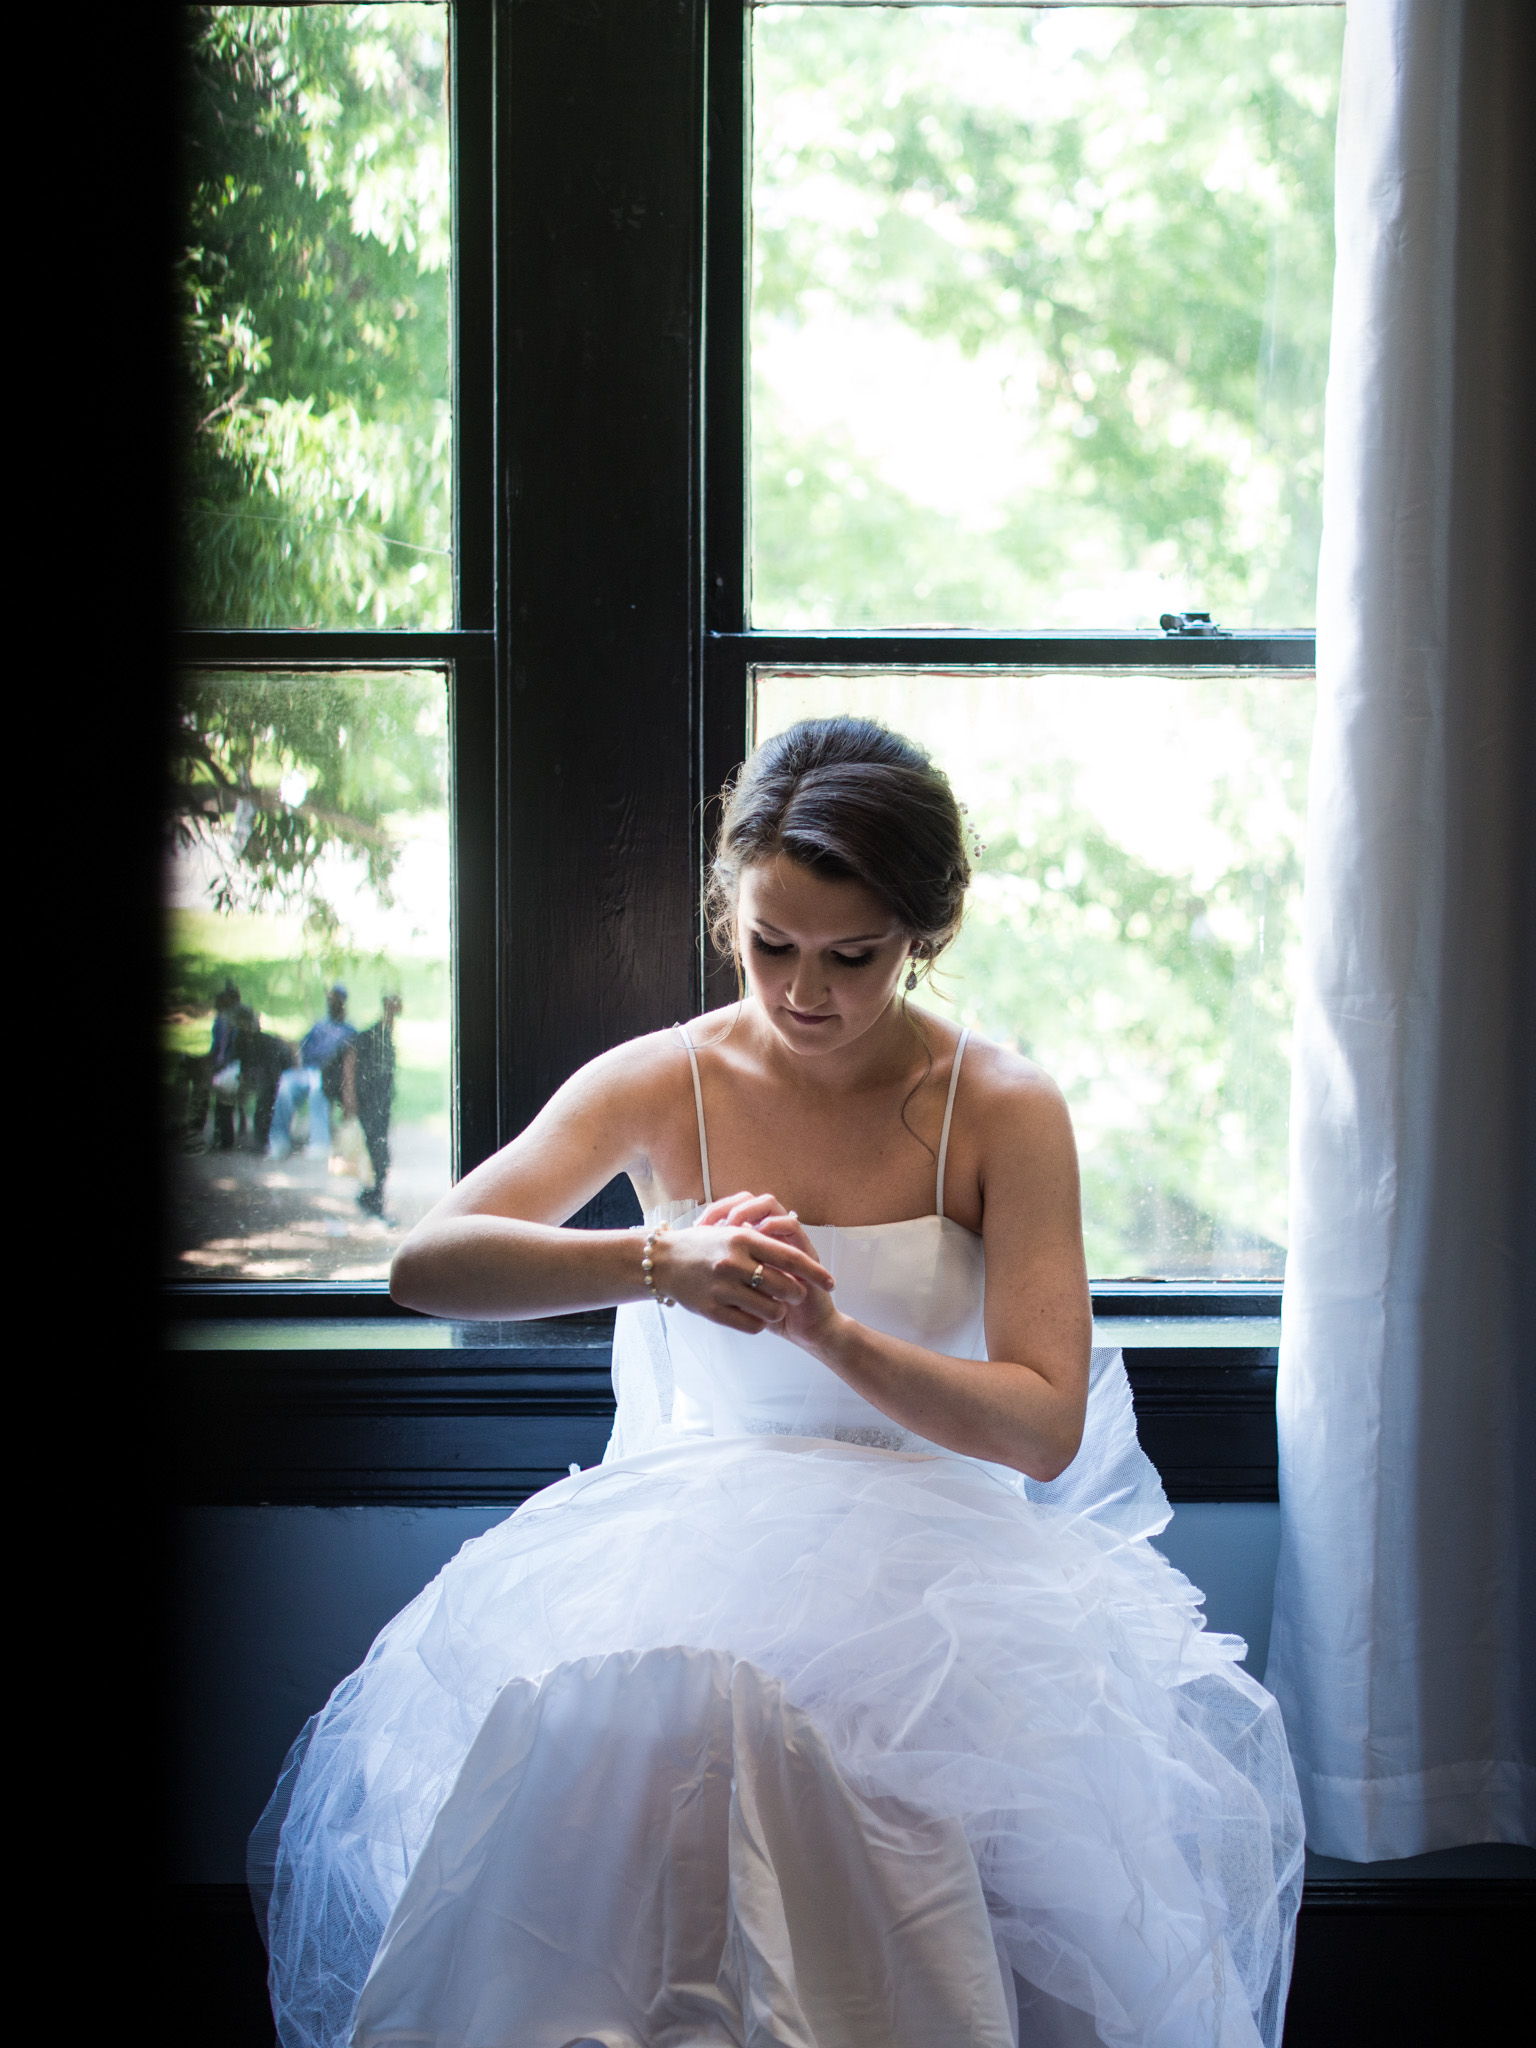 214 Martin Street, Wedding Photography, Wedding Dress, Getting Ready, Bridal Portrait